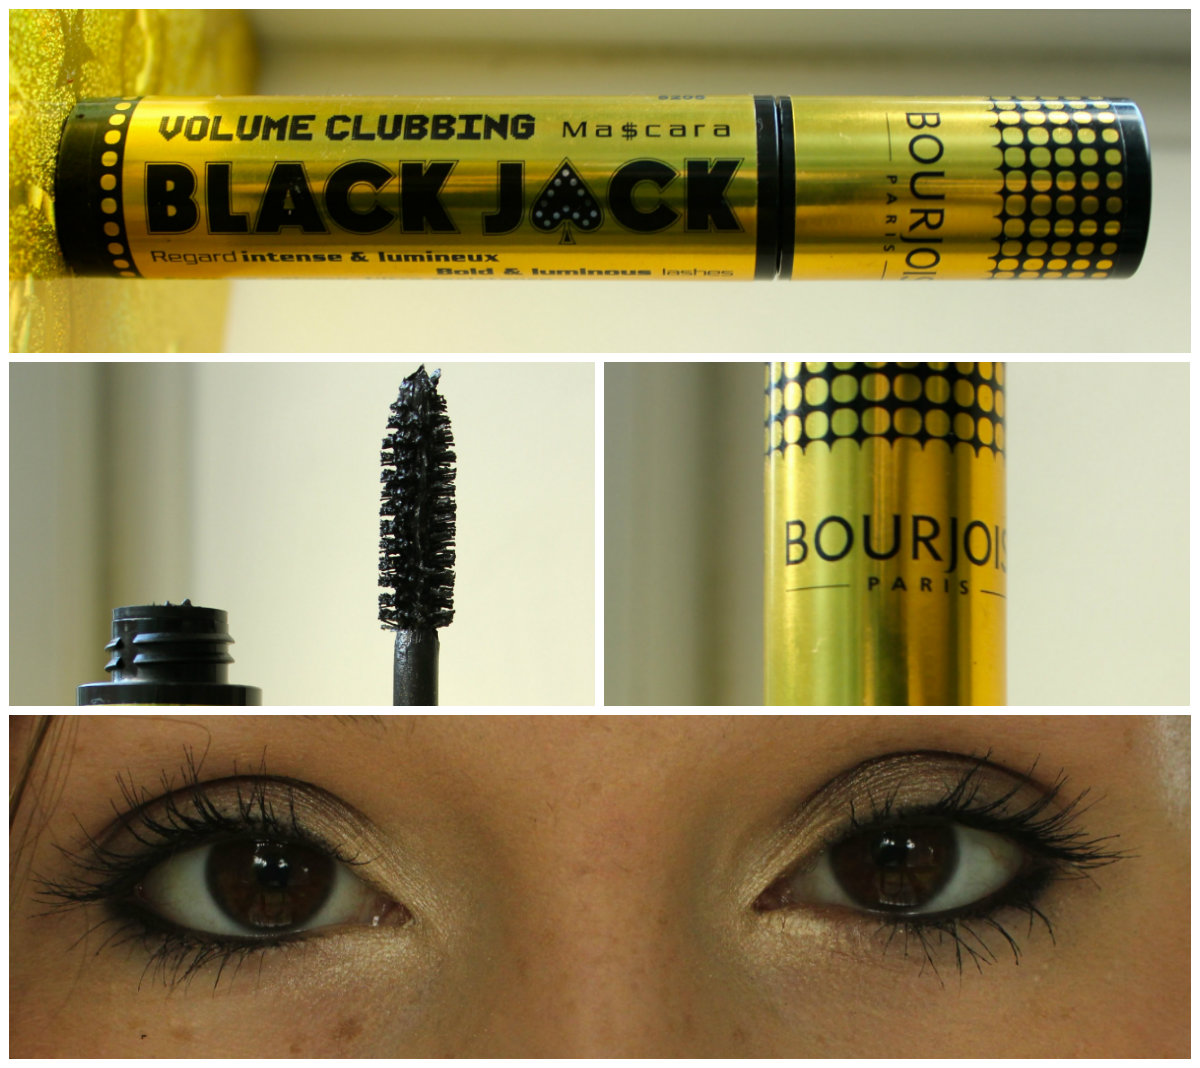 1844eac3288 I really love this Mascara. The large double sided brush that is covered in  supple bristles makes it easy to apply, giving full and even coverage, ...